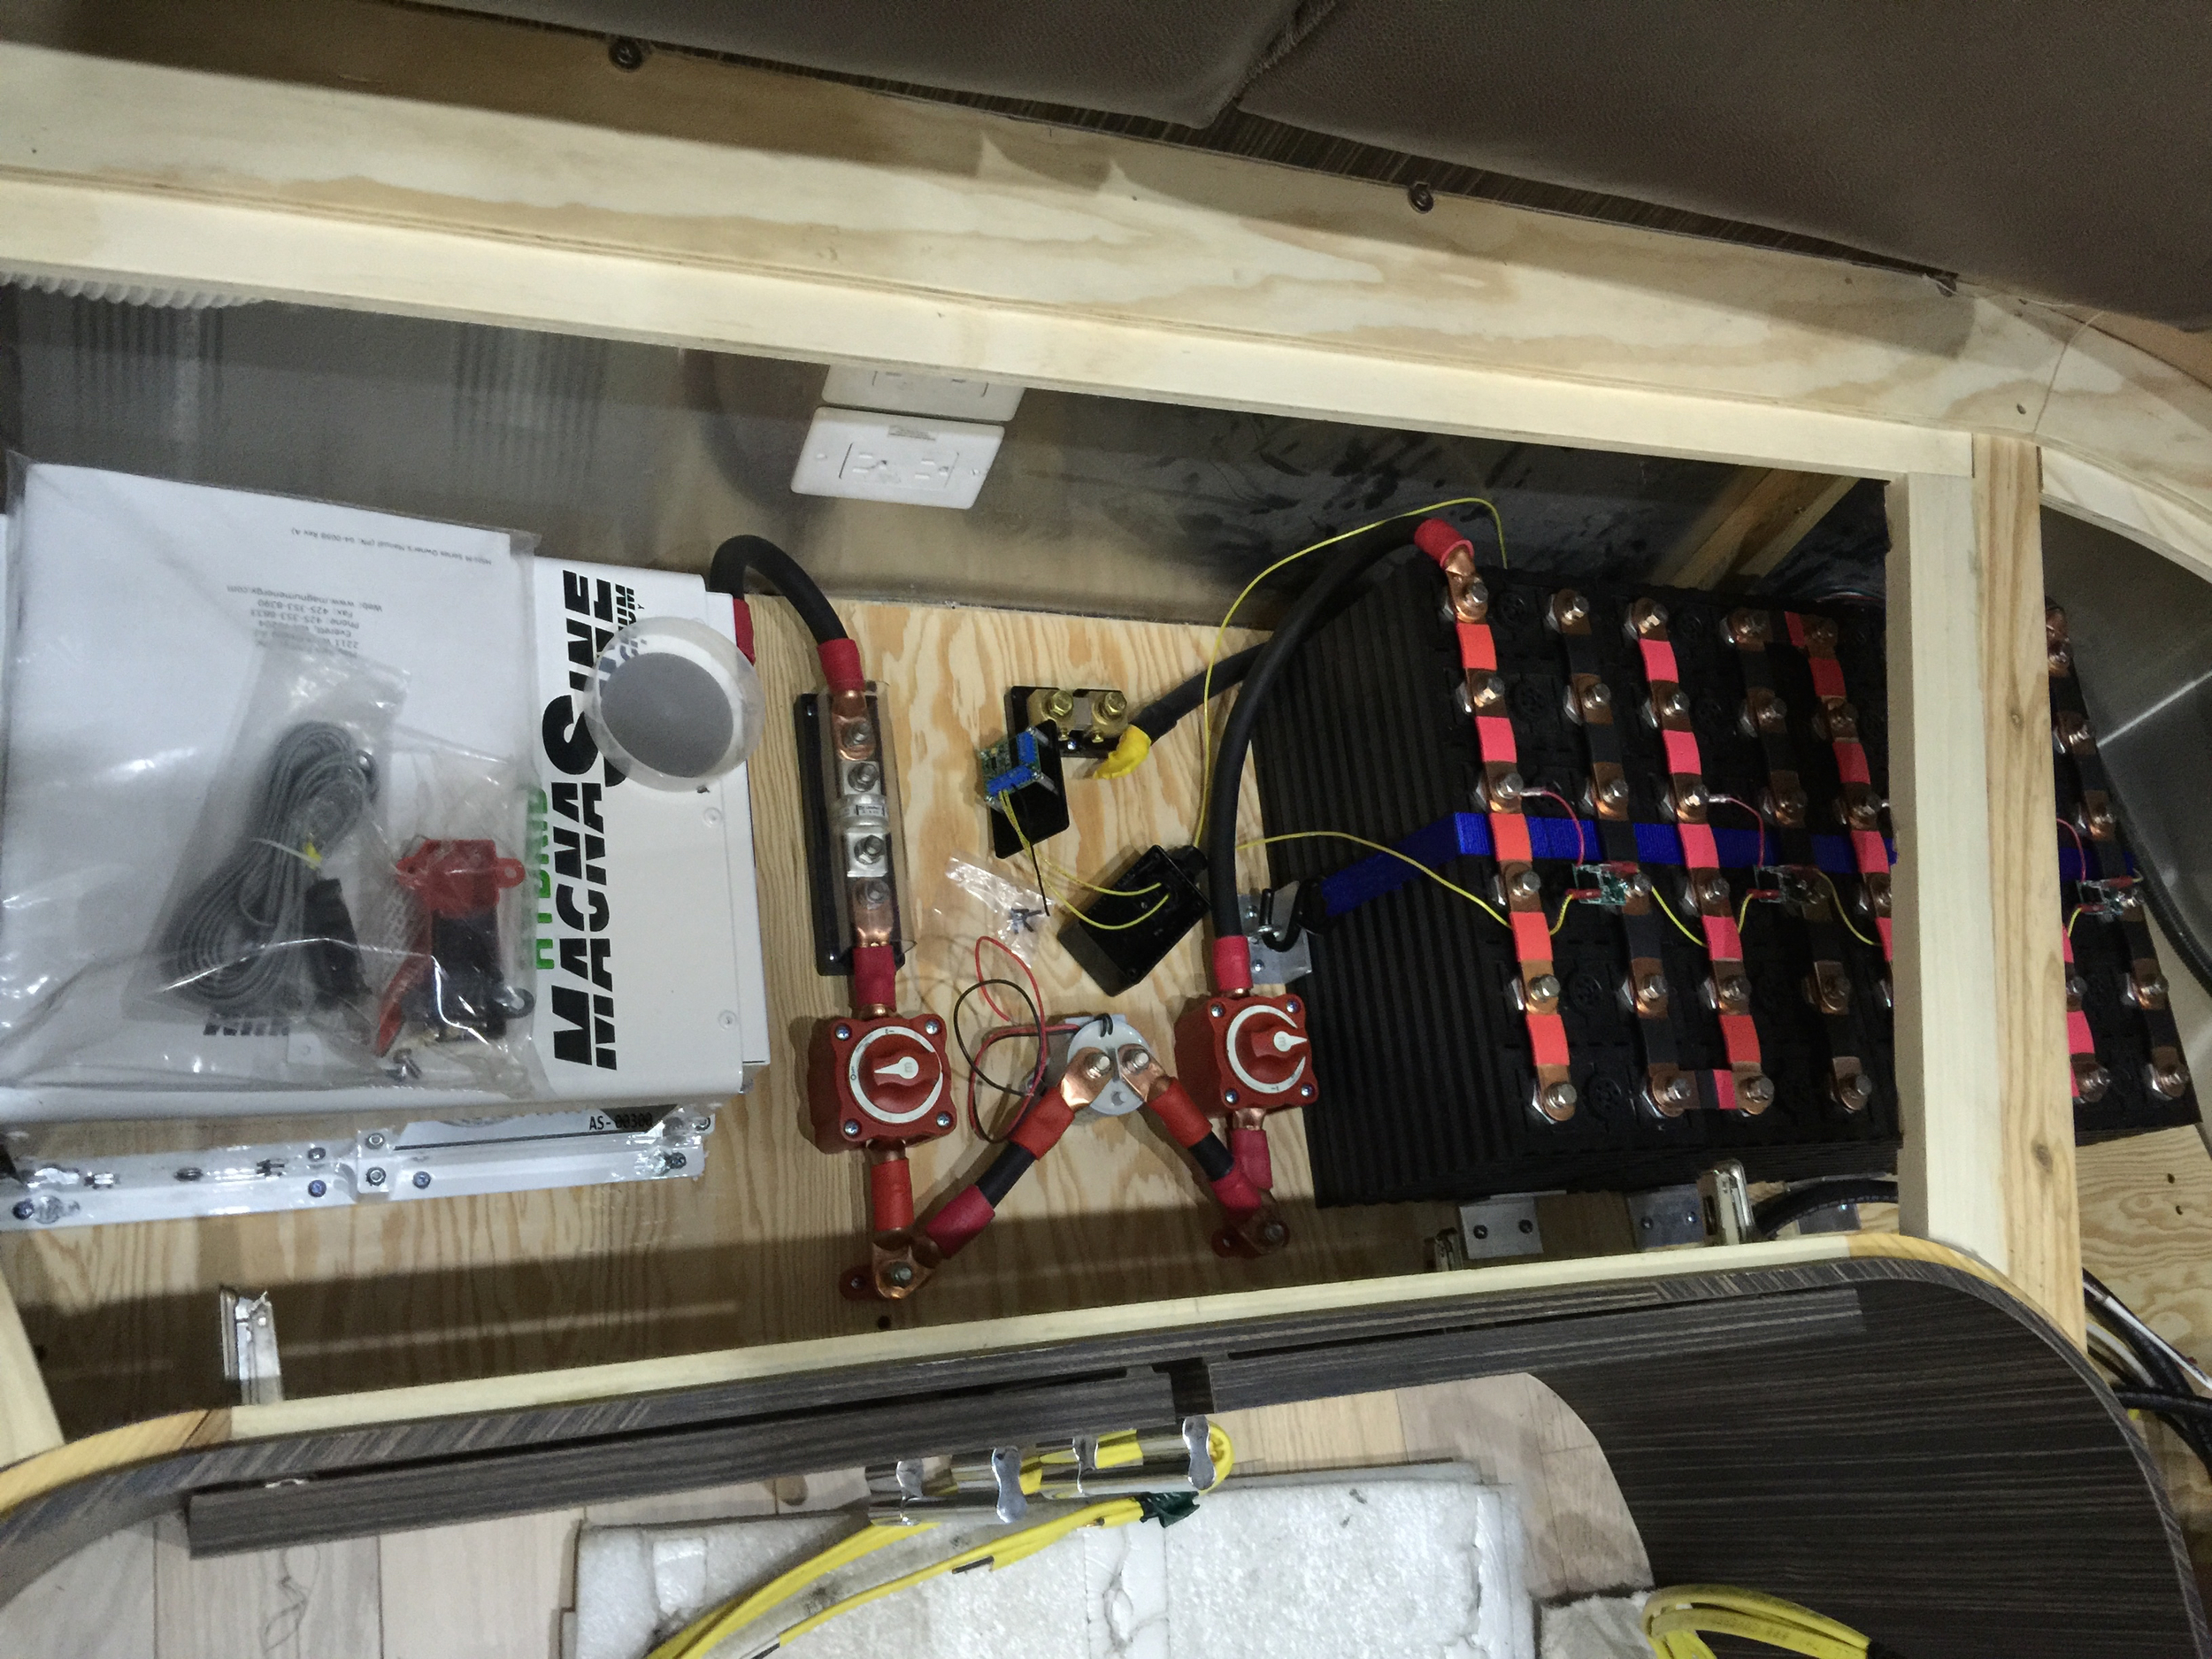 Being installed:  Magnum 3000-watt hybrid inverter, and 6 banks of lithium power cells (100 amp-hours  each).